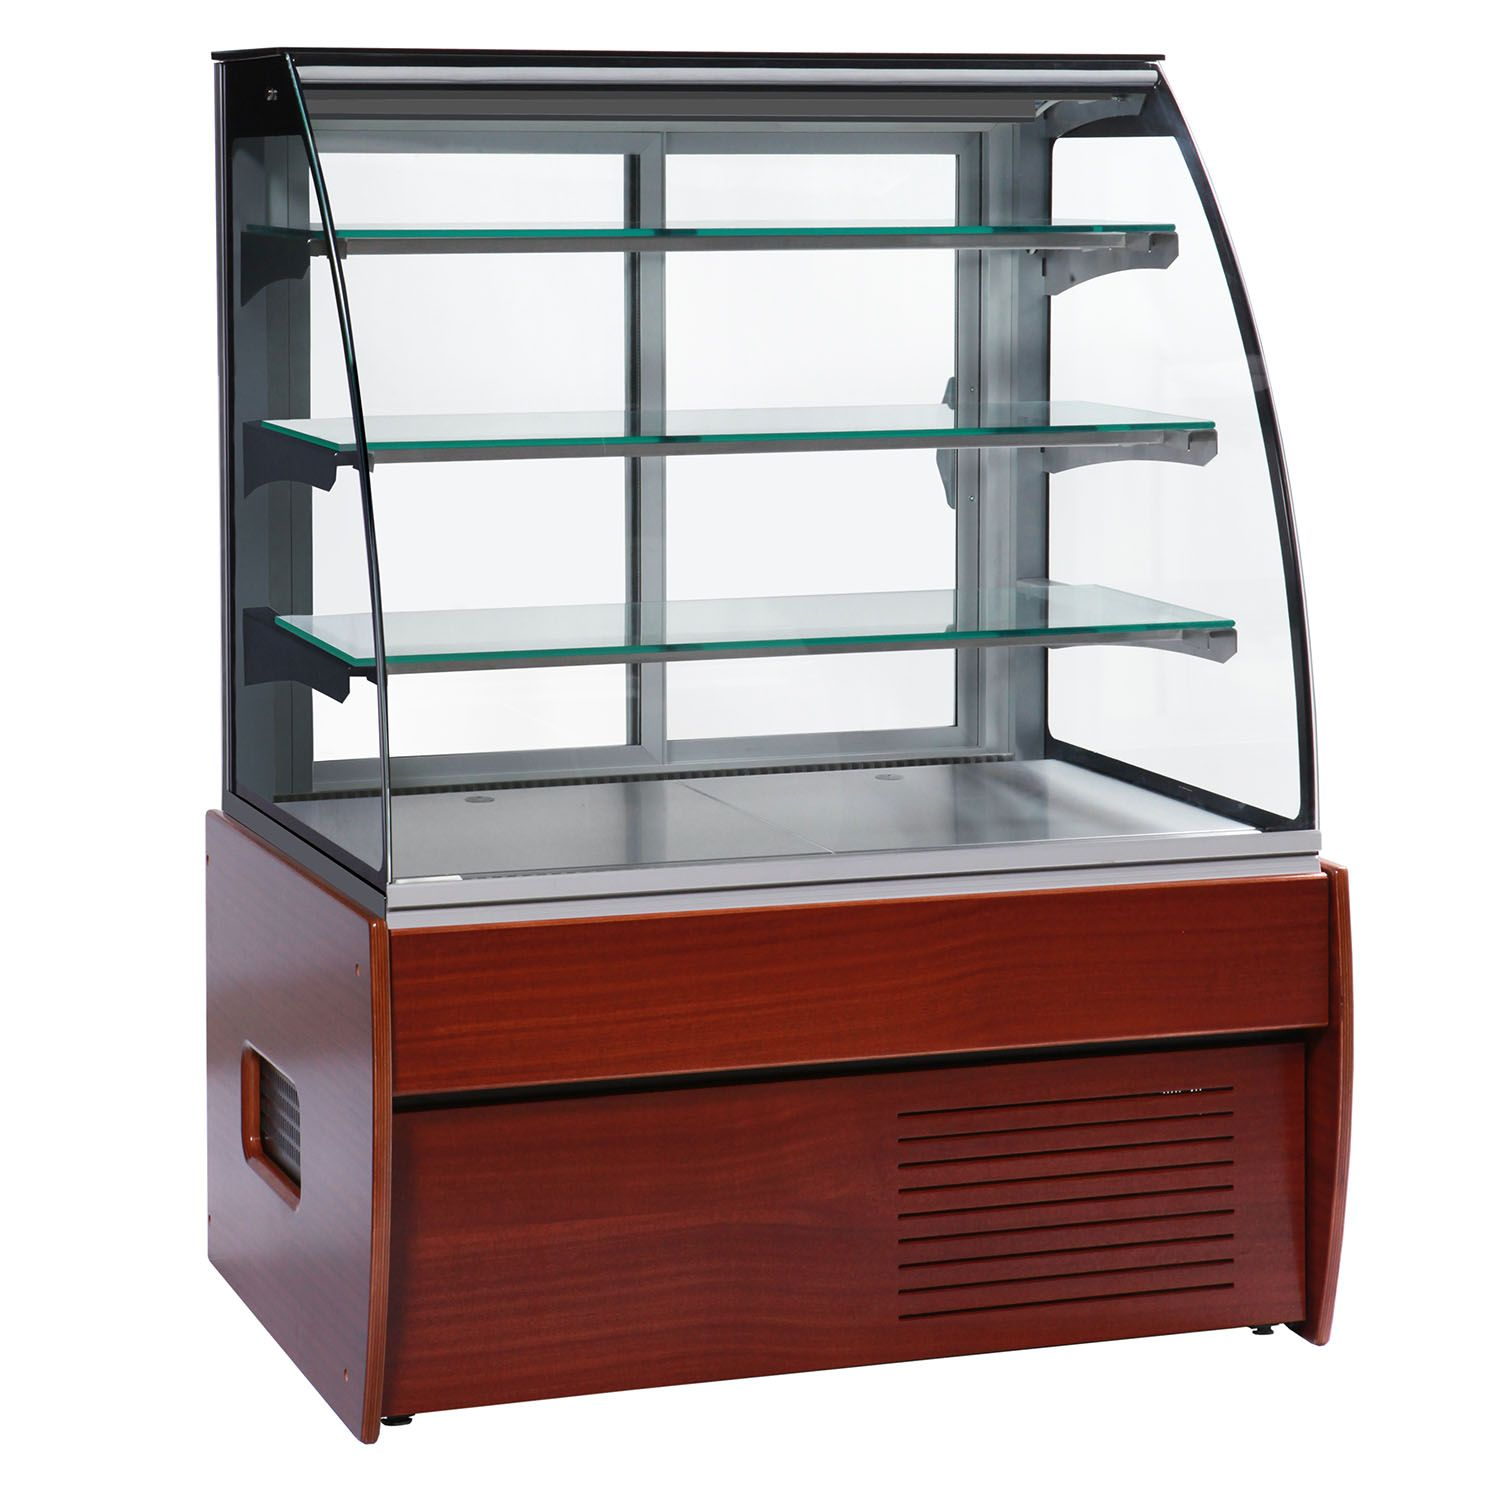 Bakery Display Cabinet Trimco Zurich Ii 100w Chocolate Display Cabinet Wood Finish